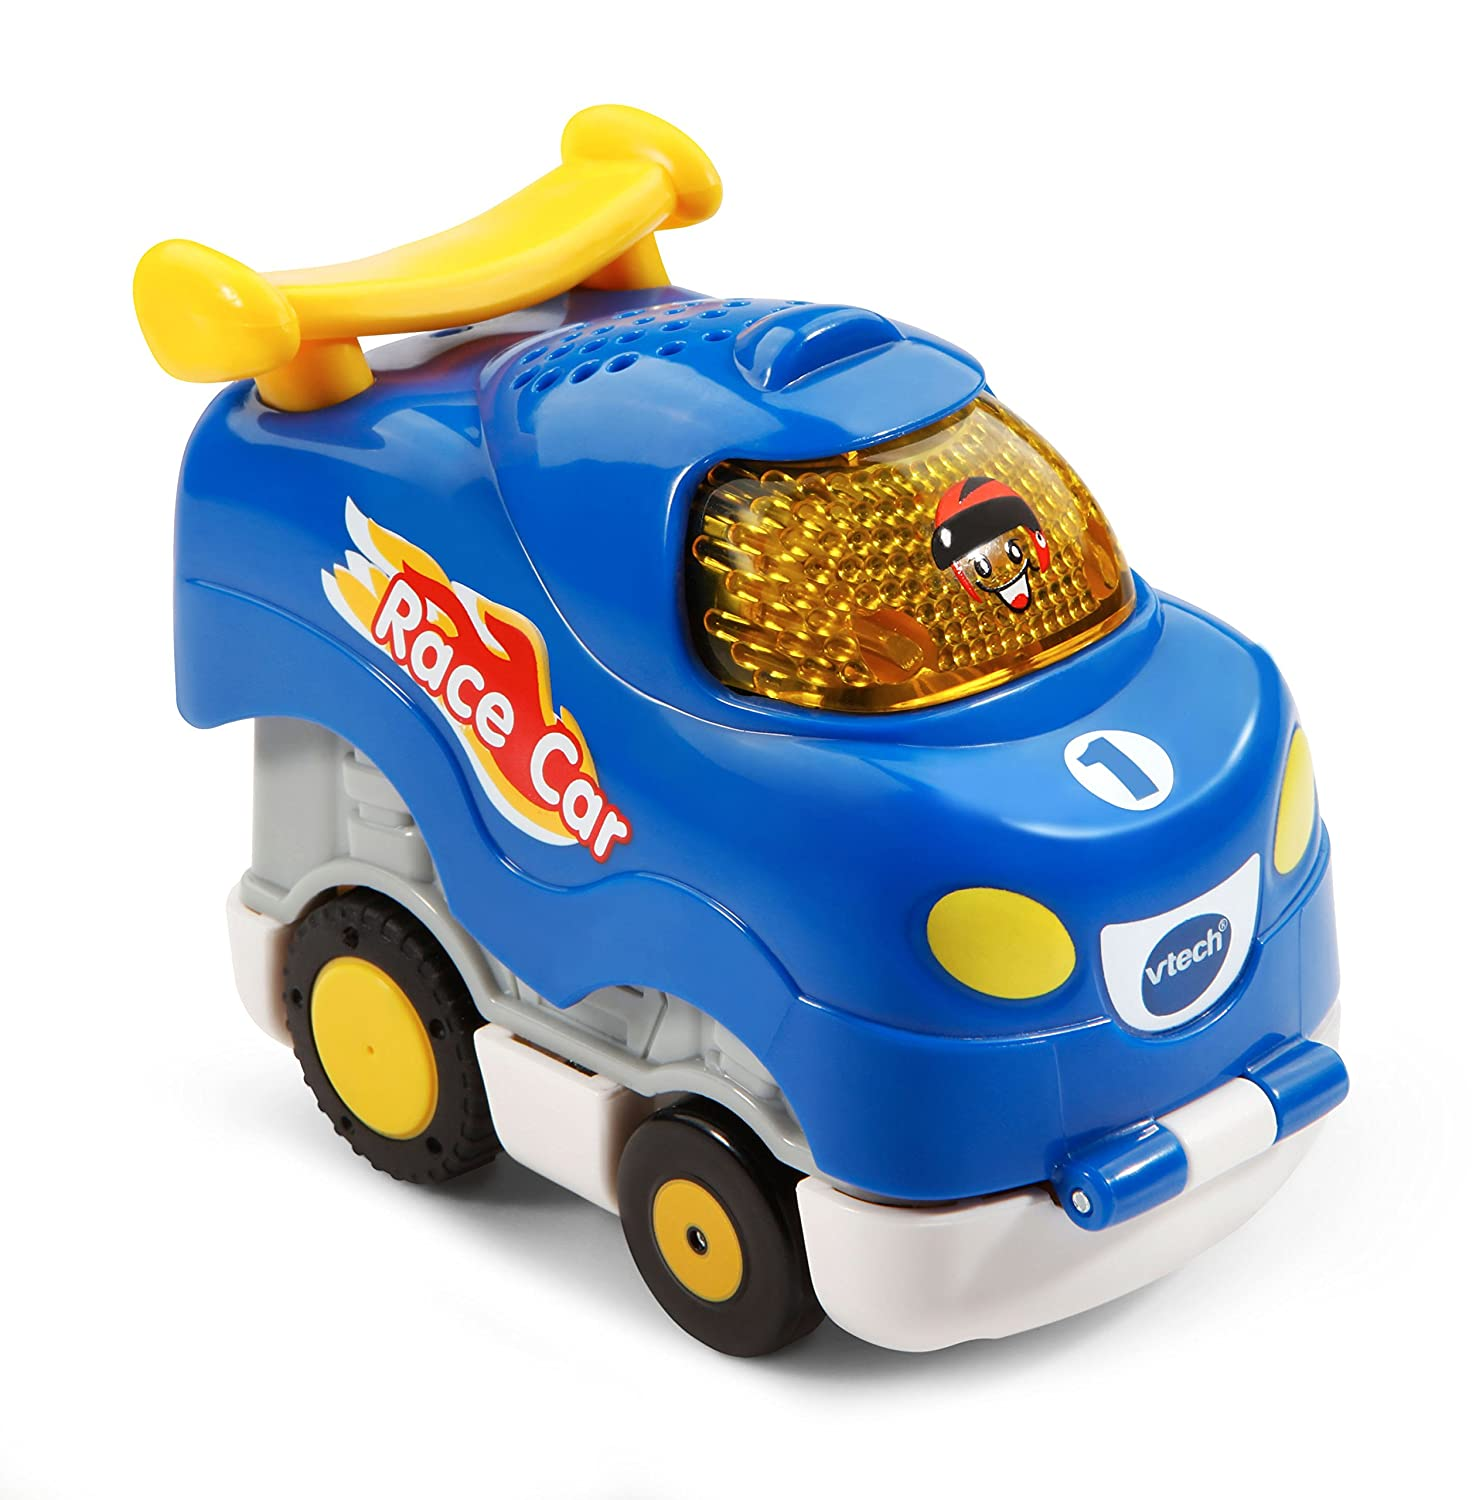 VTech Go Go Smart Wheels Press and Race Race Car